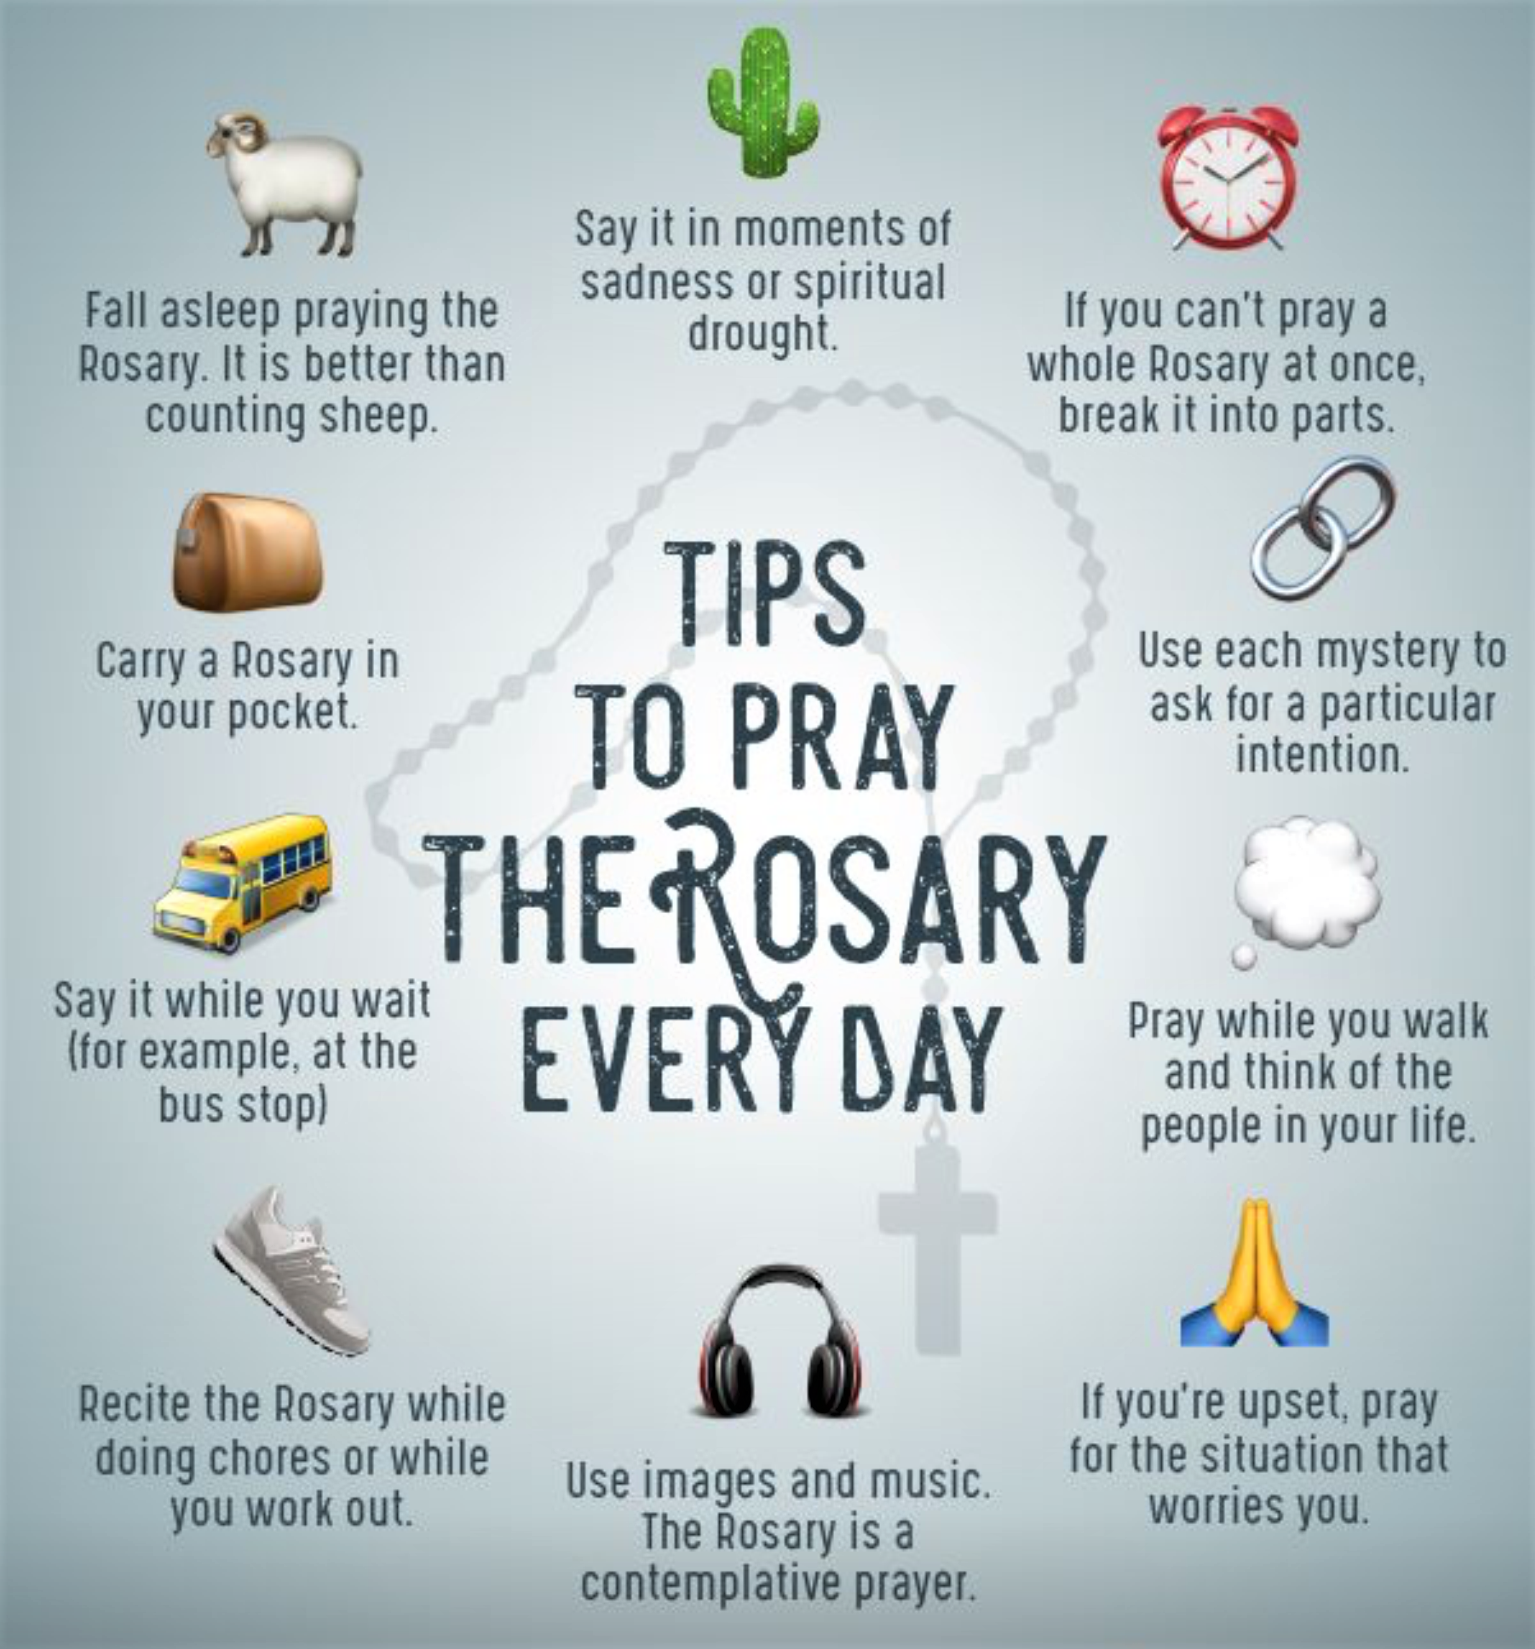 Helpful Hints for praying the Rosary.